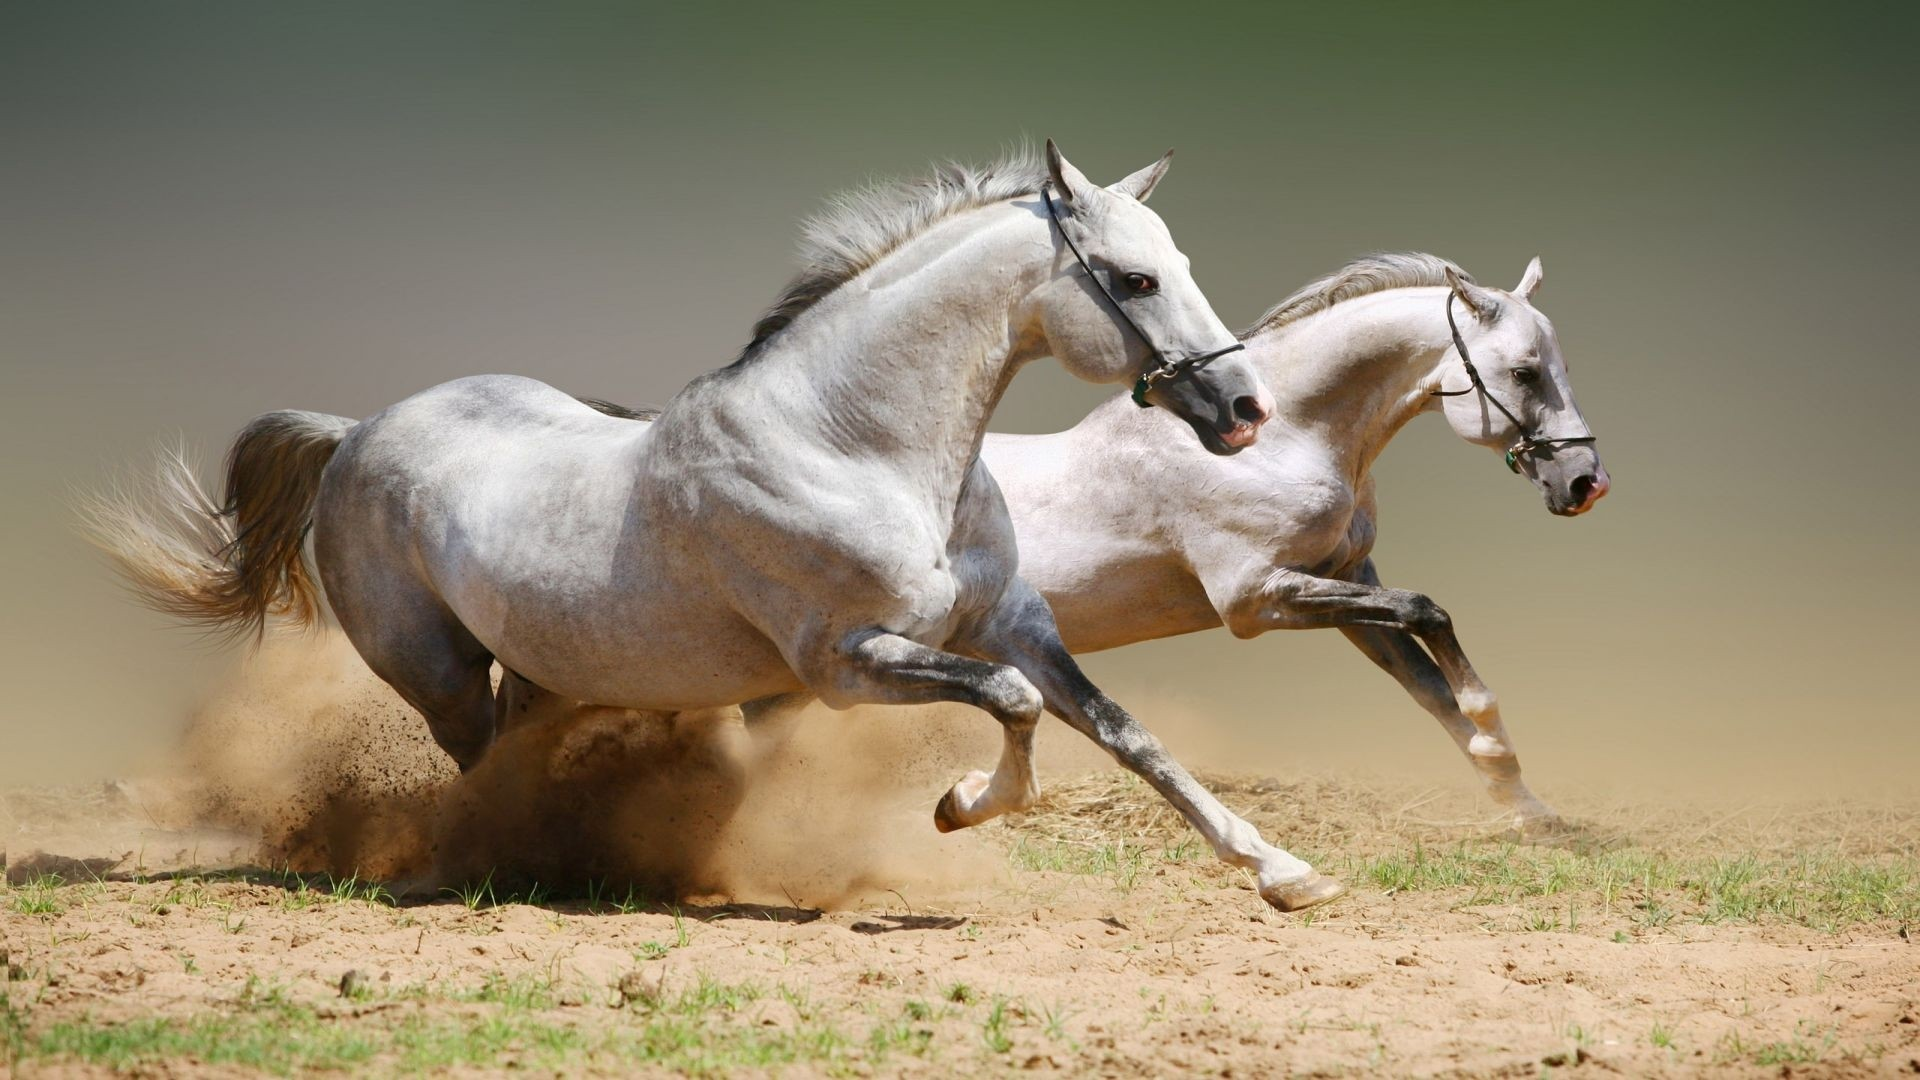 White Horse Wallpaper and Background